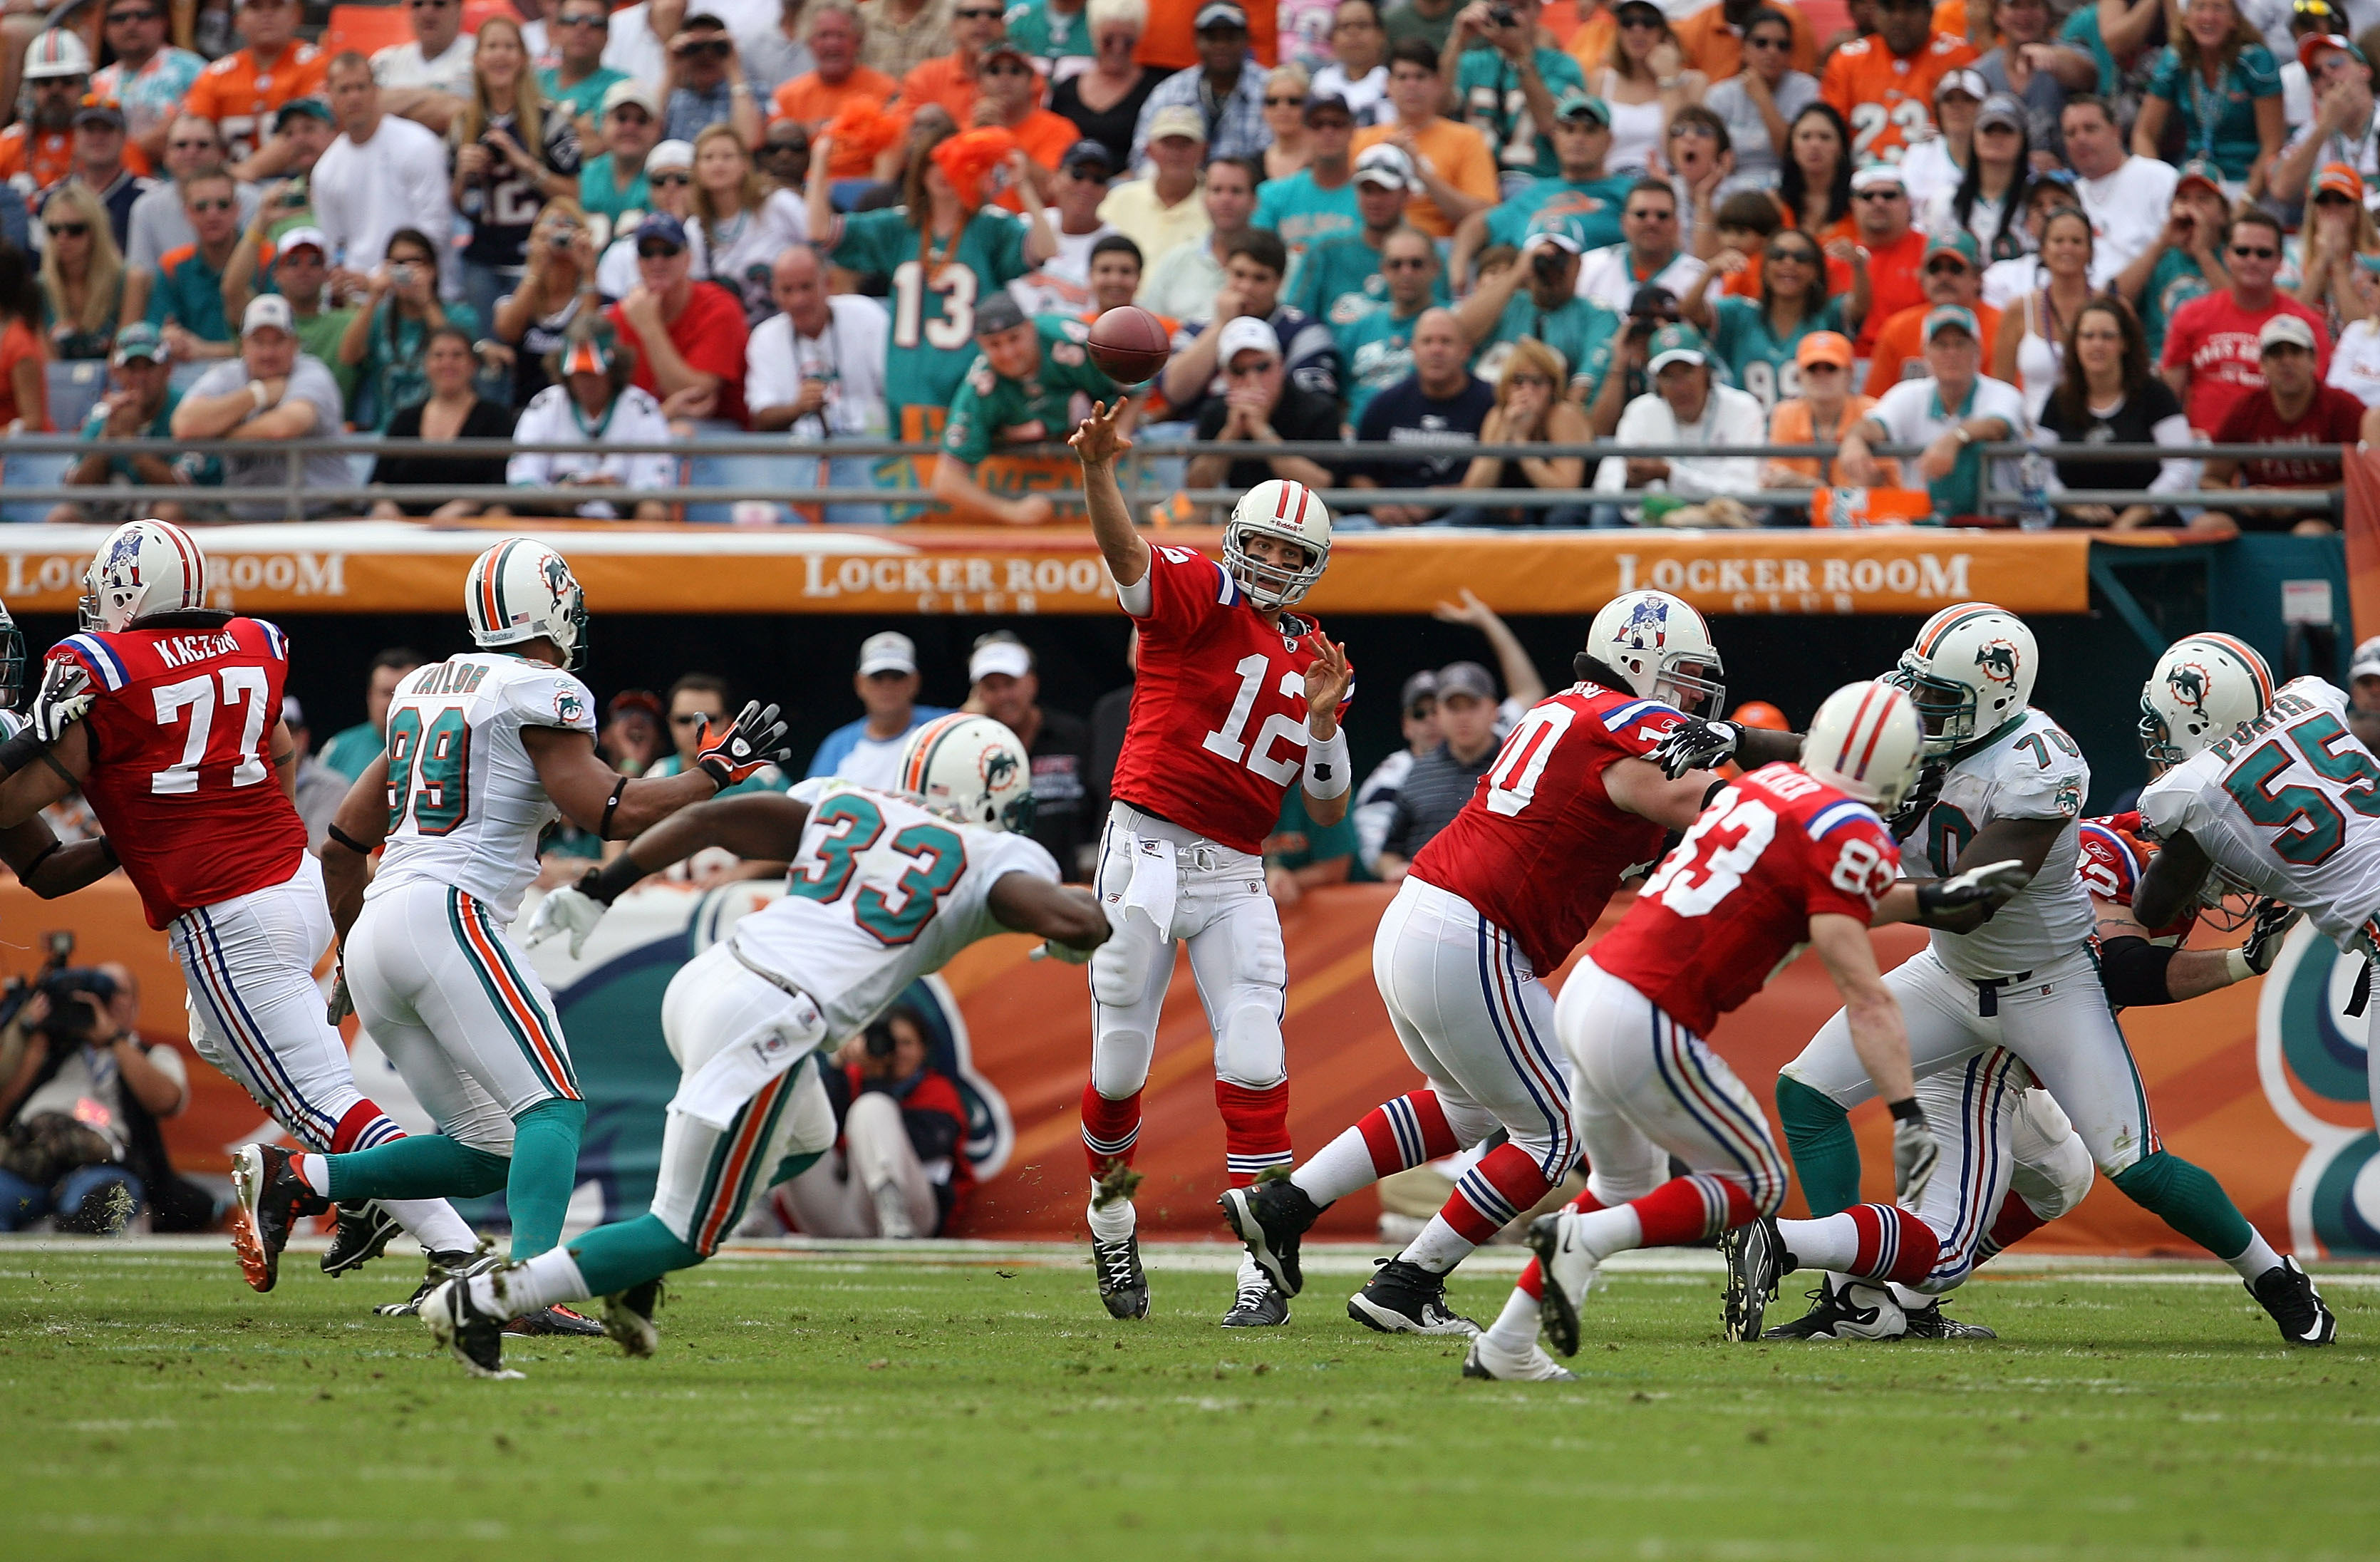 MIAMI - DECEMBER 06:  Quarterback Tom Brady #12 of the New England Patriots throws a pass against the Miami Dolphins at Land Shark Stadium on December 6, 2009 in Miami, Florida.  (Photo by Doug Benc/Getty Images)